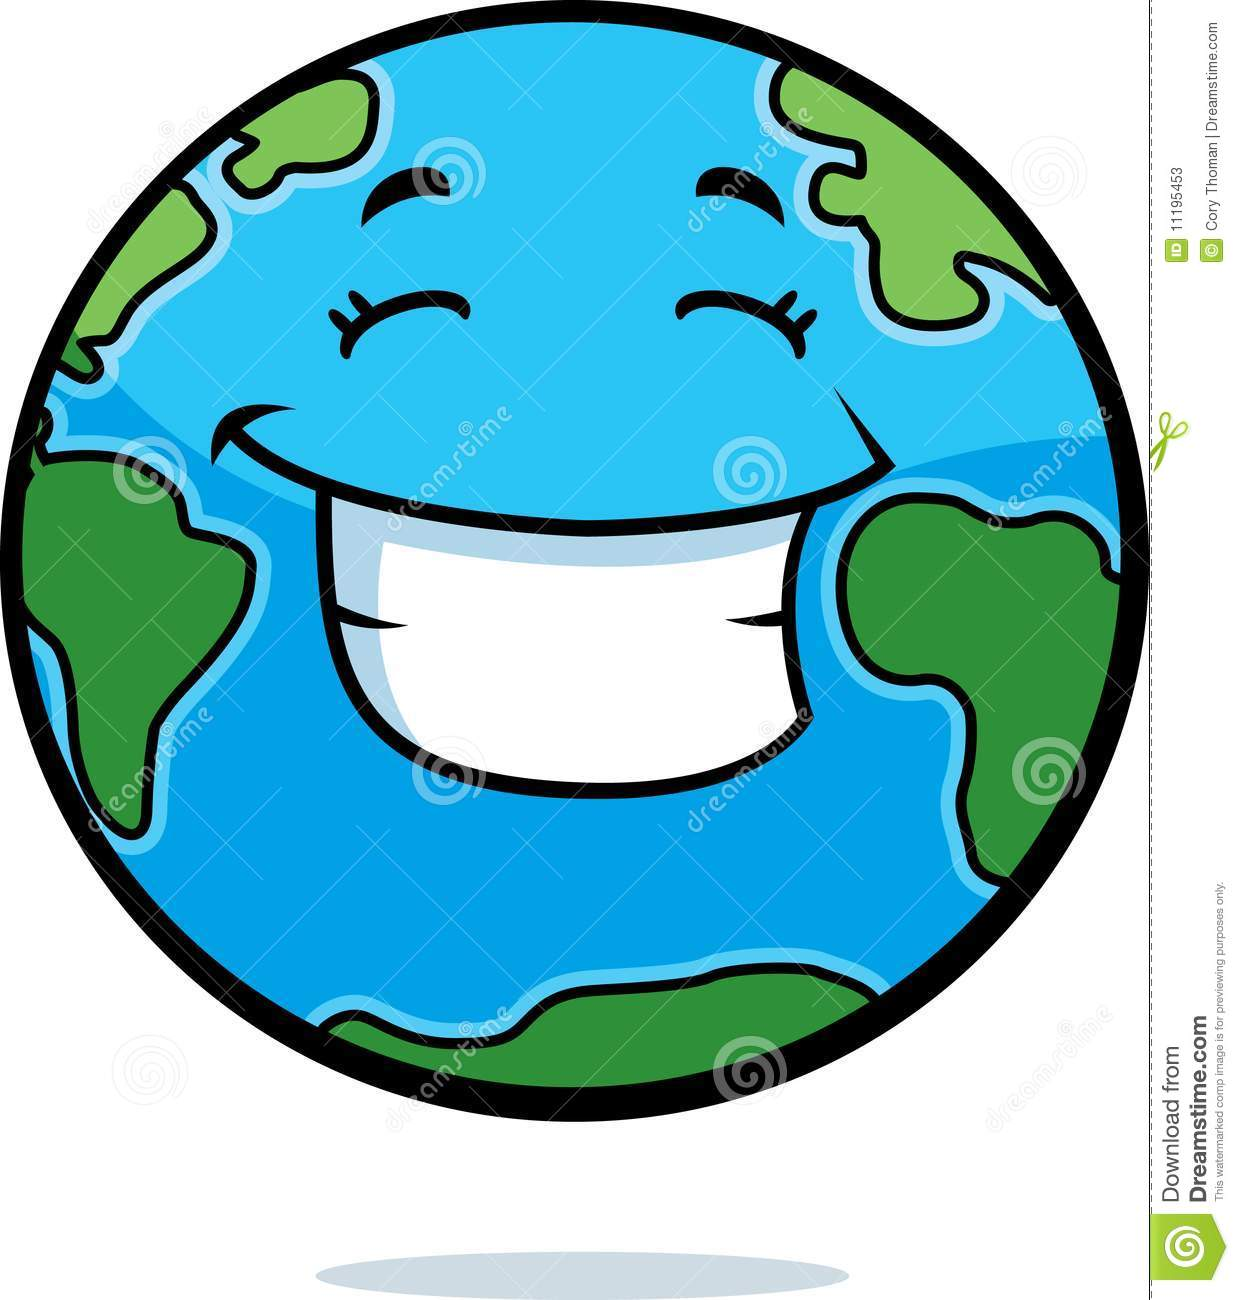 Earth Smiling Stock Photos - Image: 11195453